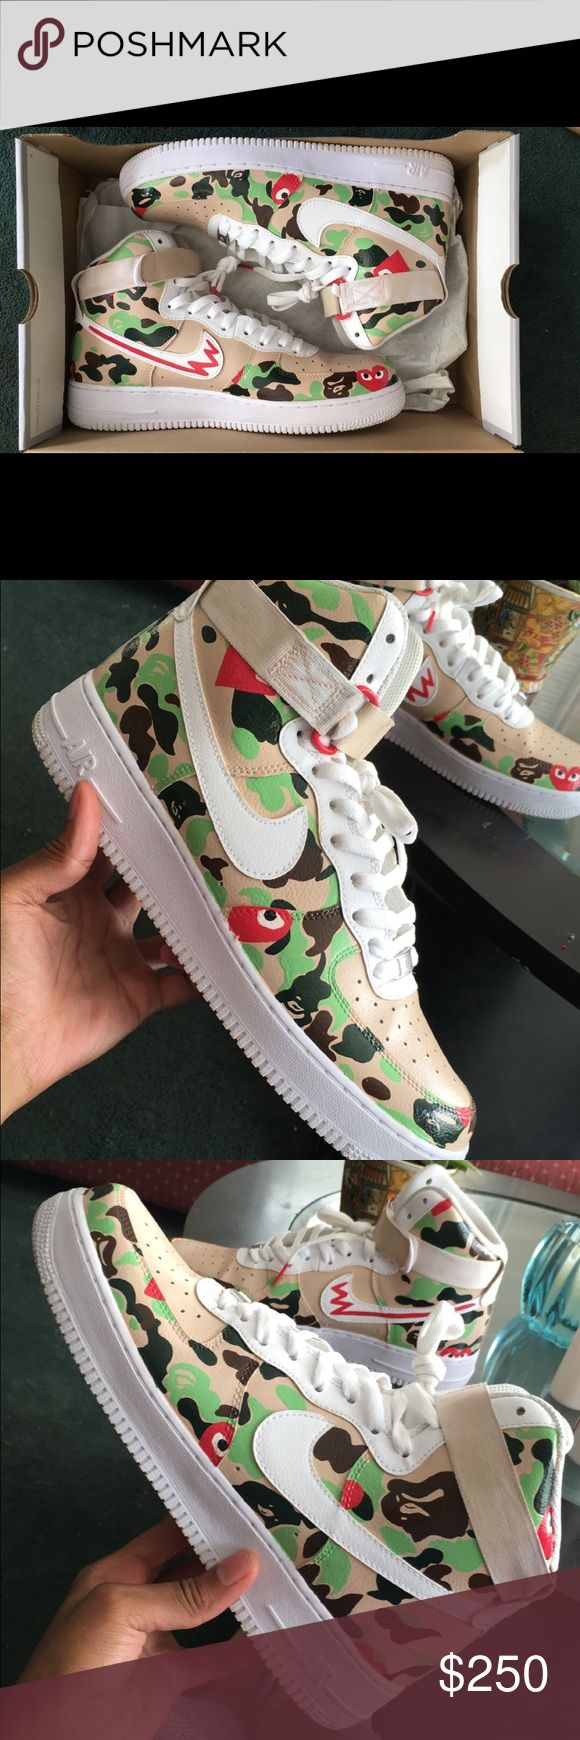 New heat customs Air Force 1 Nike Air Force 1 Comme de garçons and Bape collab customs make offers but I take pride in my work so don't low ball me. If you want some done personally contact me. Nike Shoes Sneakers